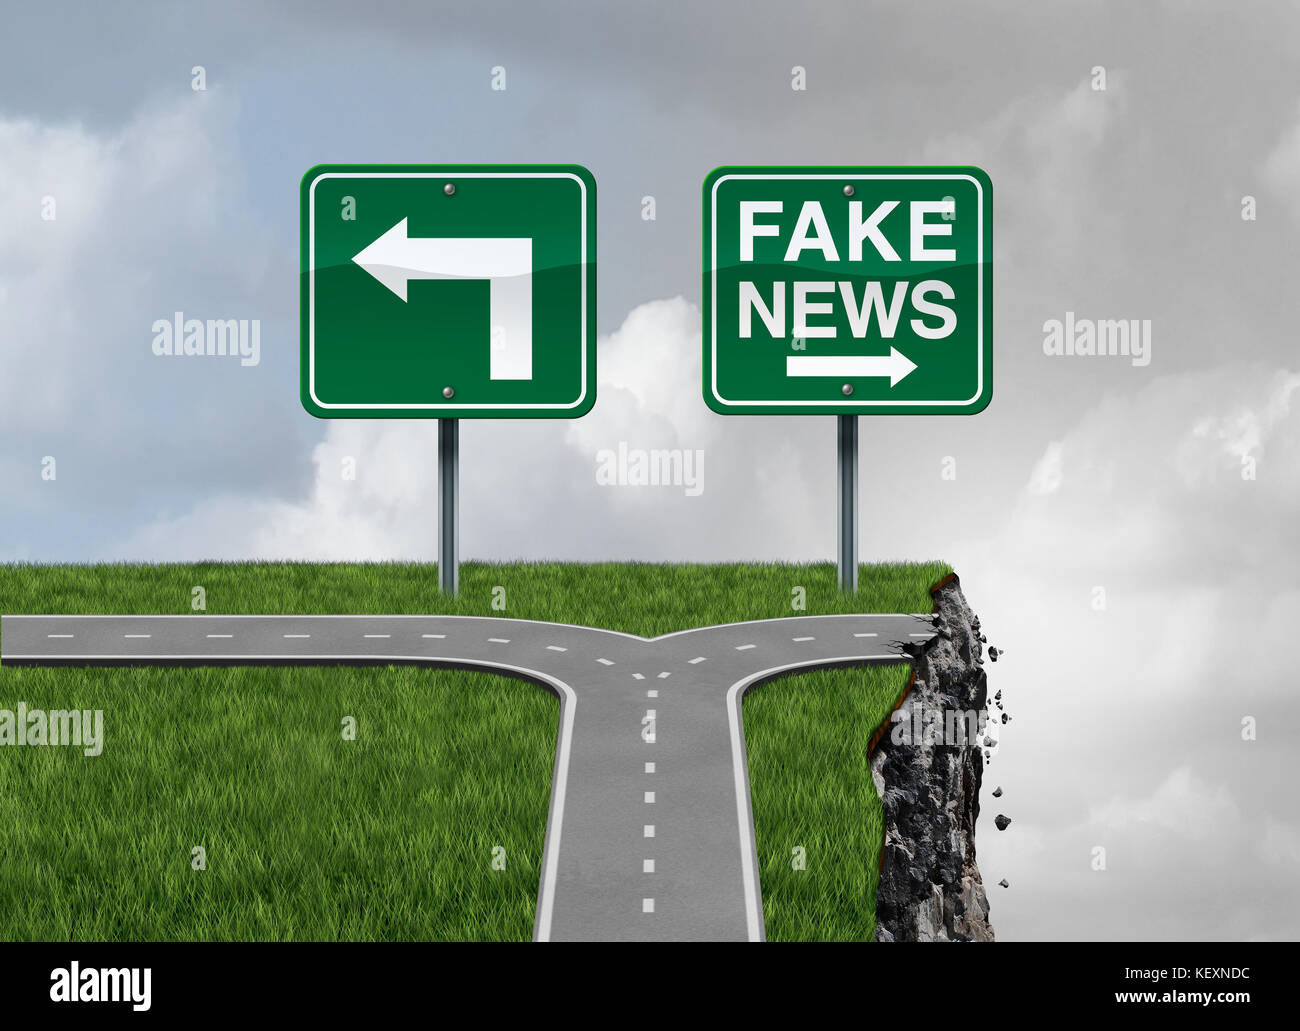 Fake news risk and alternative facts danger concept as a crossroad path with truth and false direction traffic sign - Stock Image